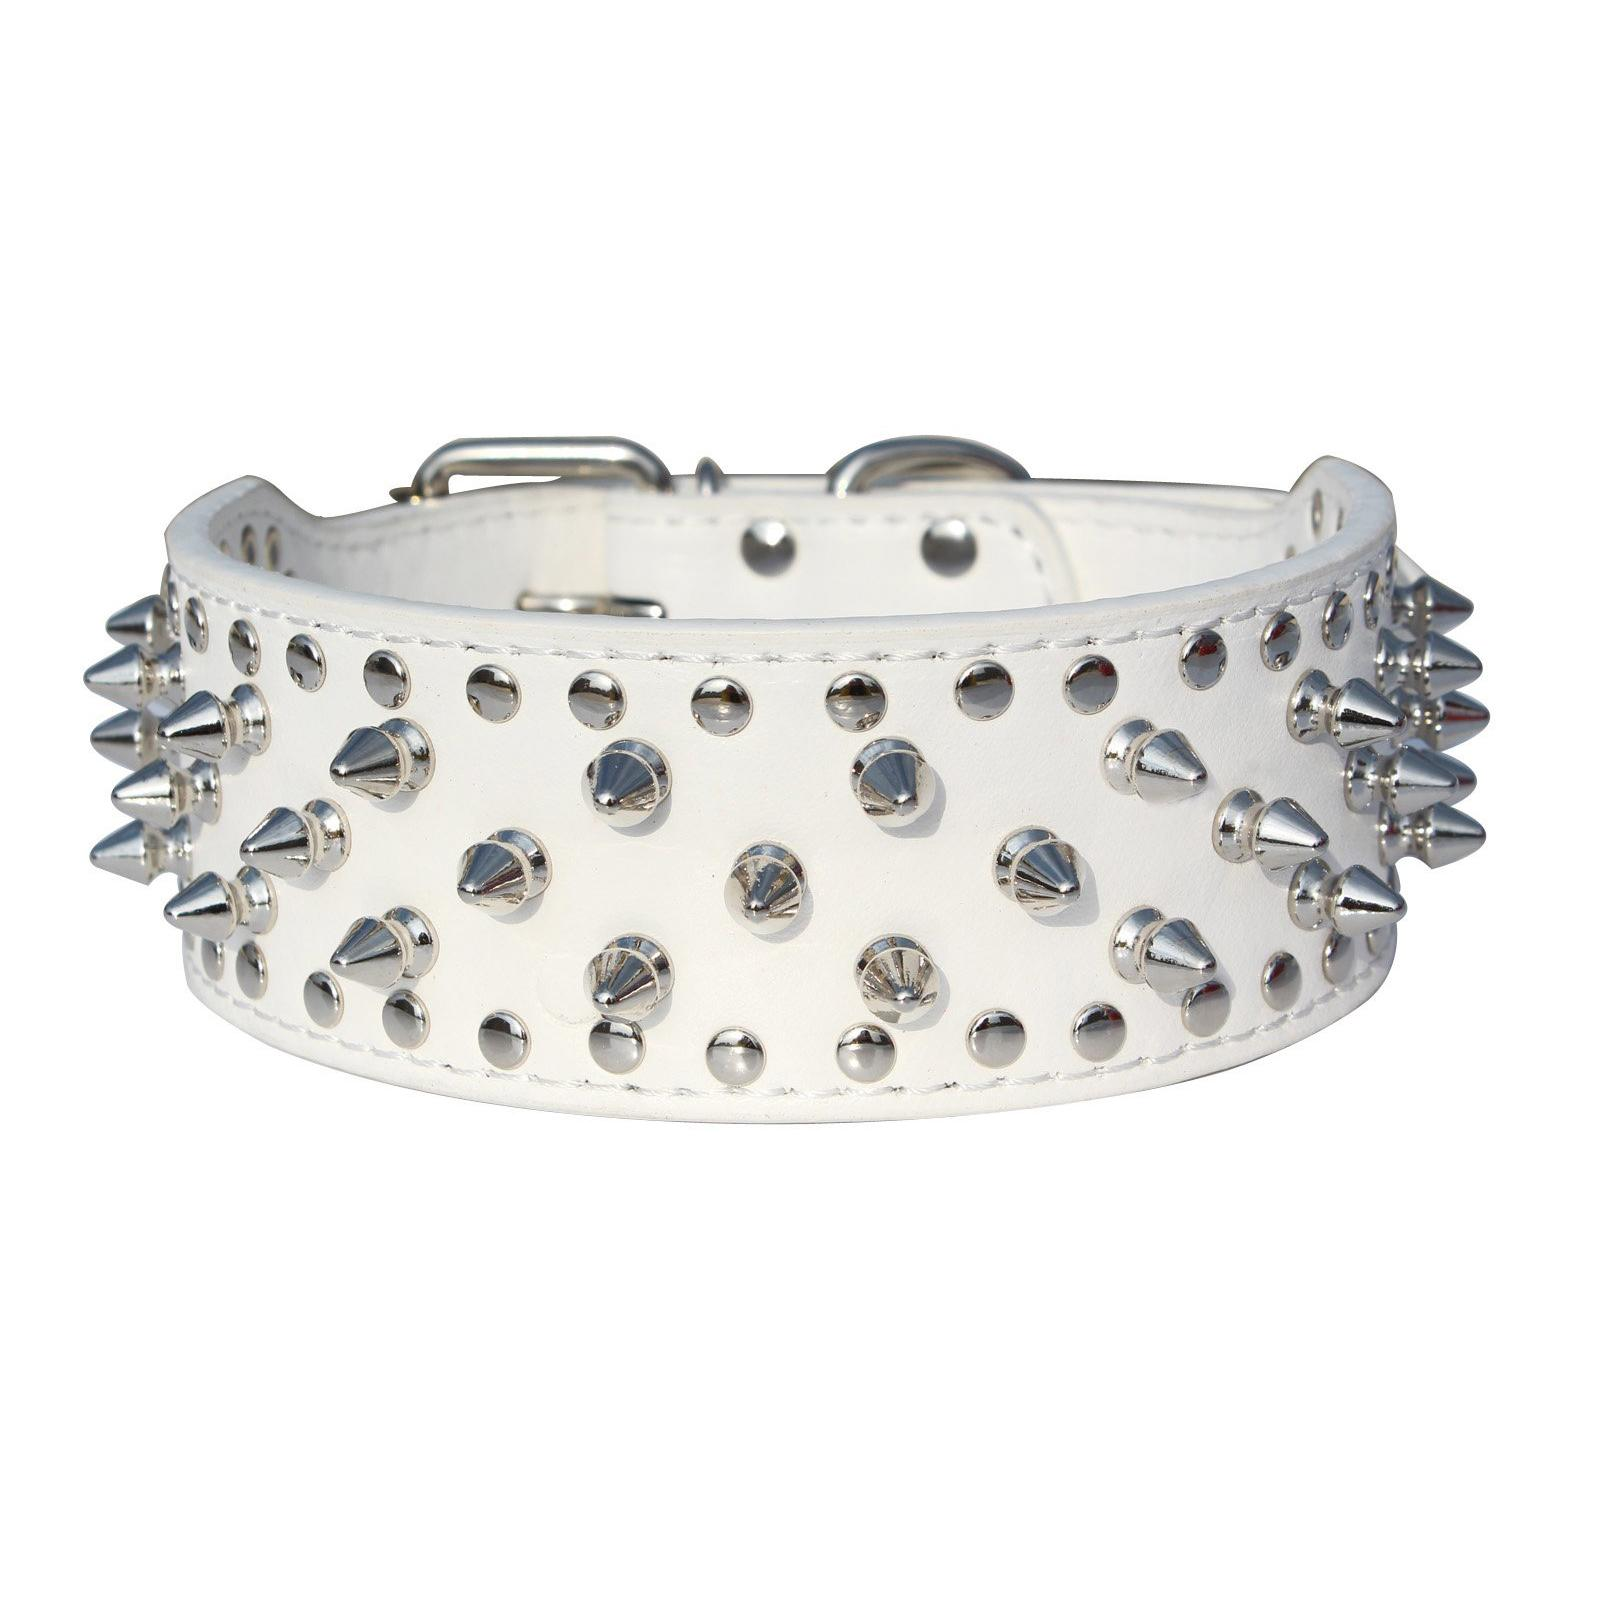 Pu Leather Spiked Studded Dog Collar 2 Wide 31 Spikes 52 Studs-White S By Sunnny2015.